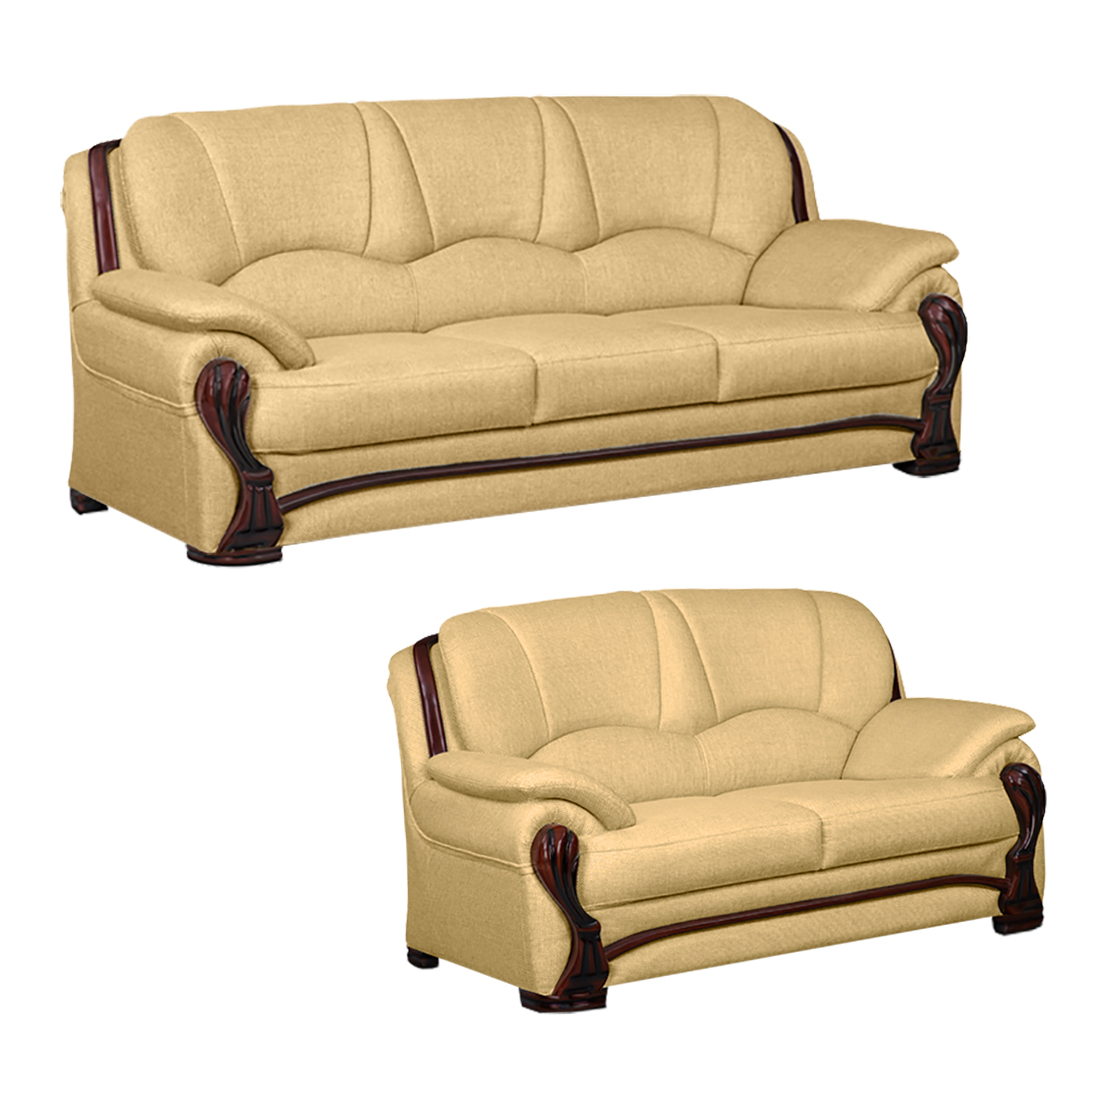 Yellow Sofa Online India Bharat Lifestyle China Gate Fabric 3 2 Gold Sofa Set